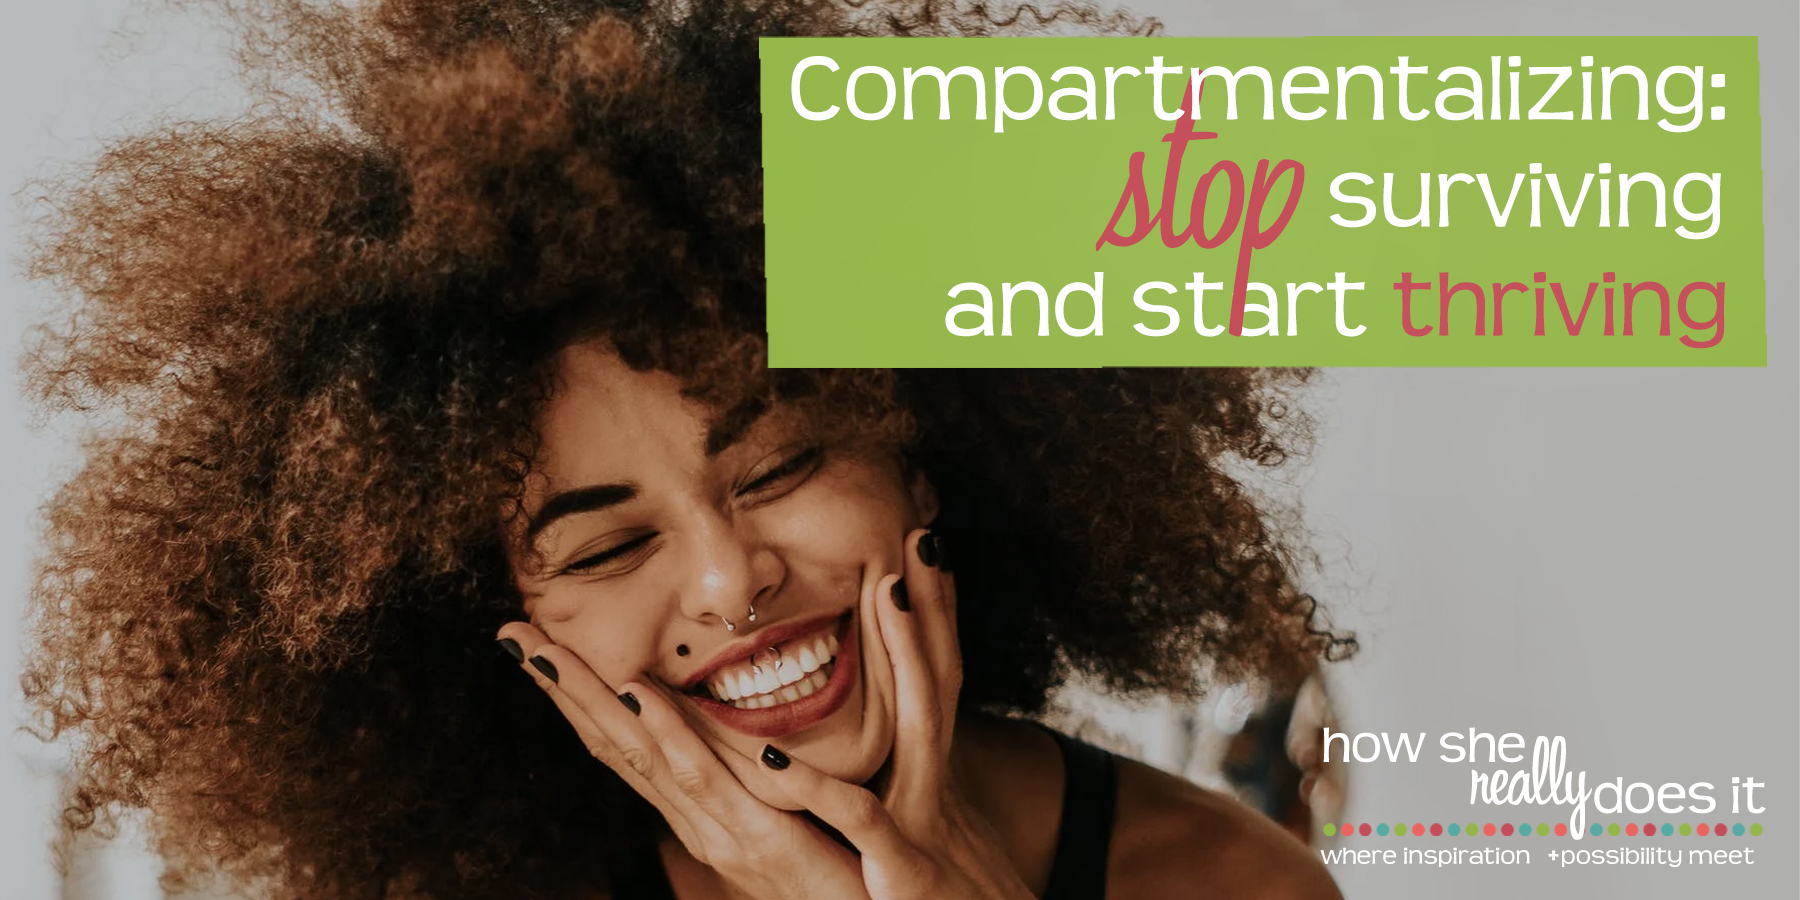 How She Really Does It with Koren Motekaitis | Compartmentalizing: stop surviving and start thriving